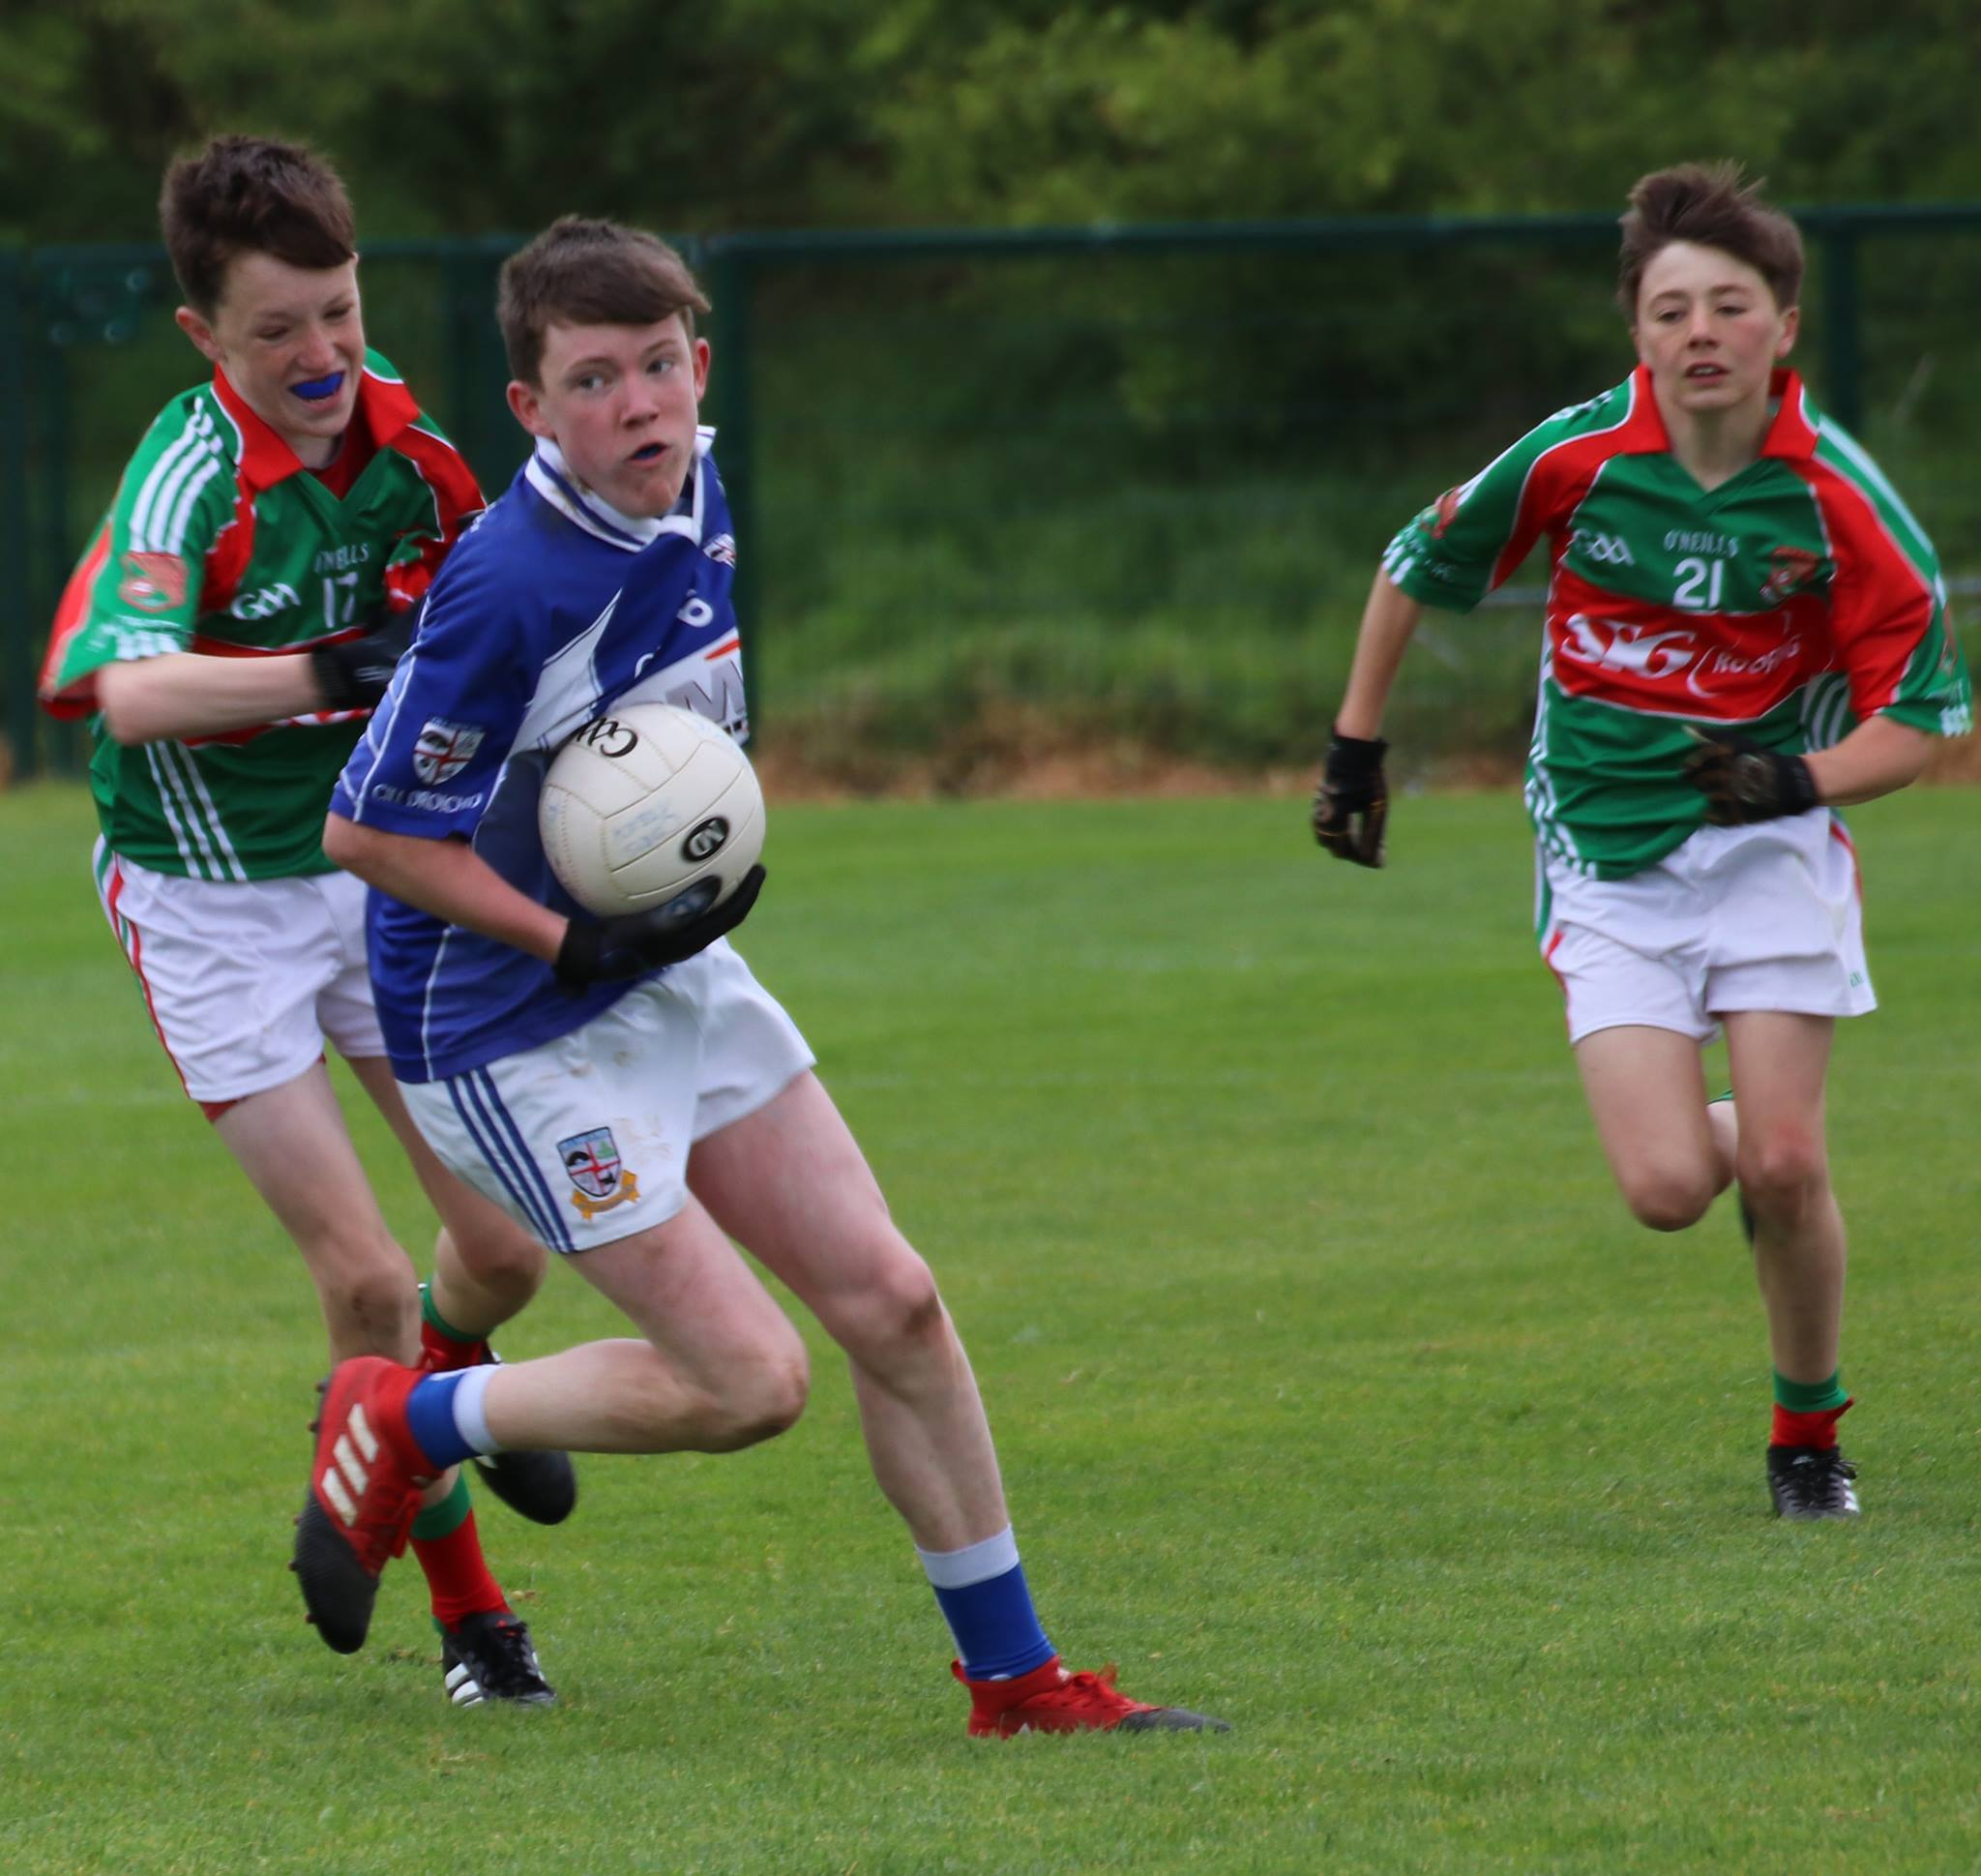 Suncroft v Celbridge Feile A Shield 10